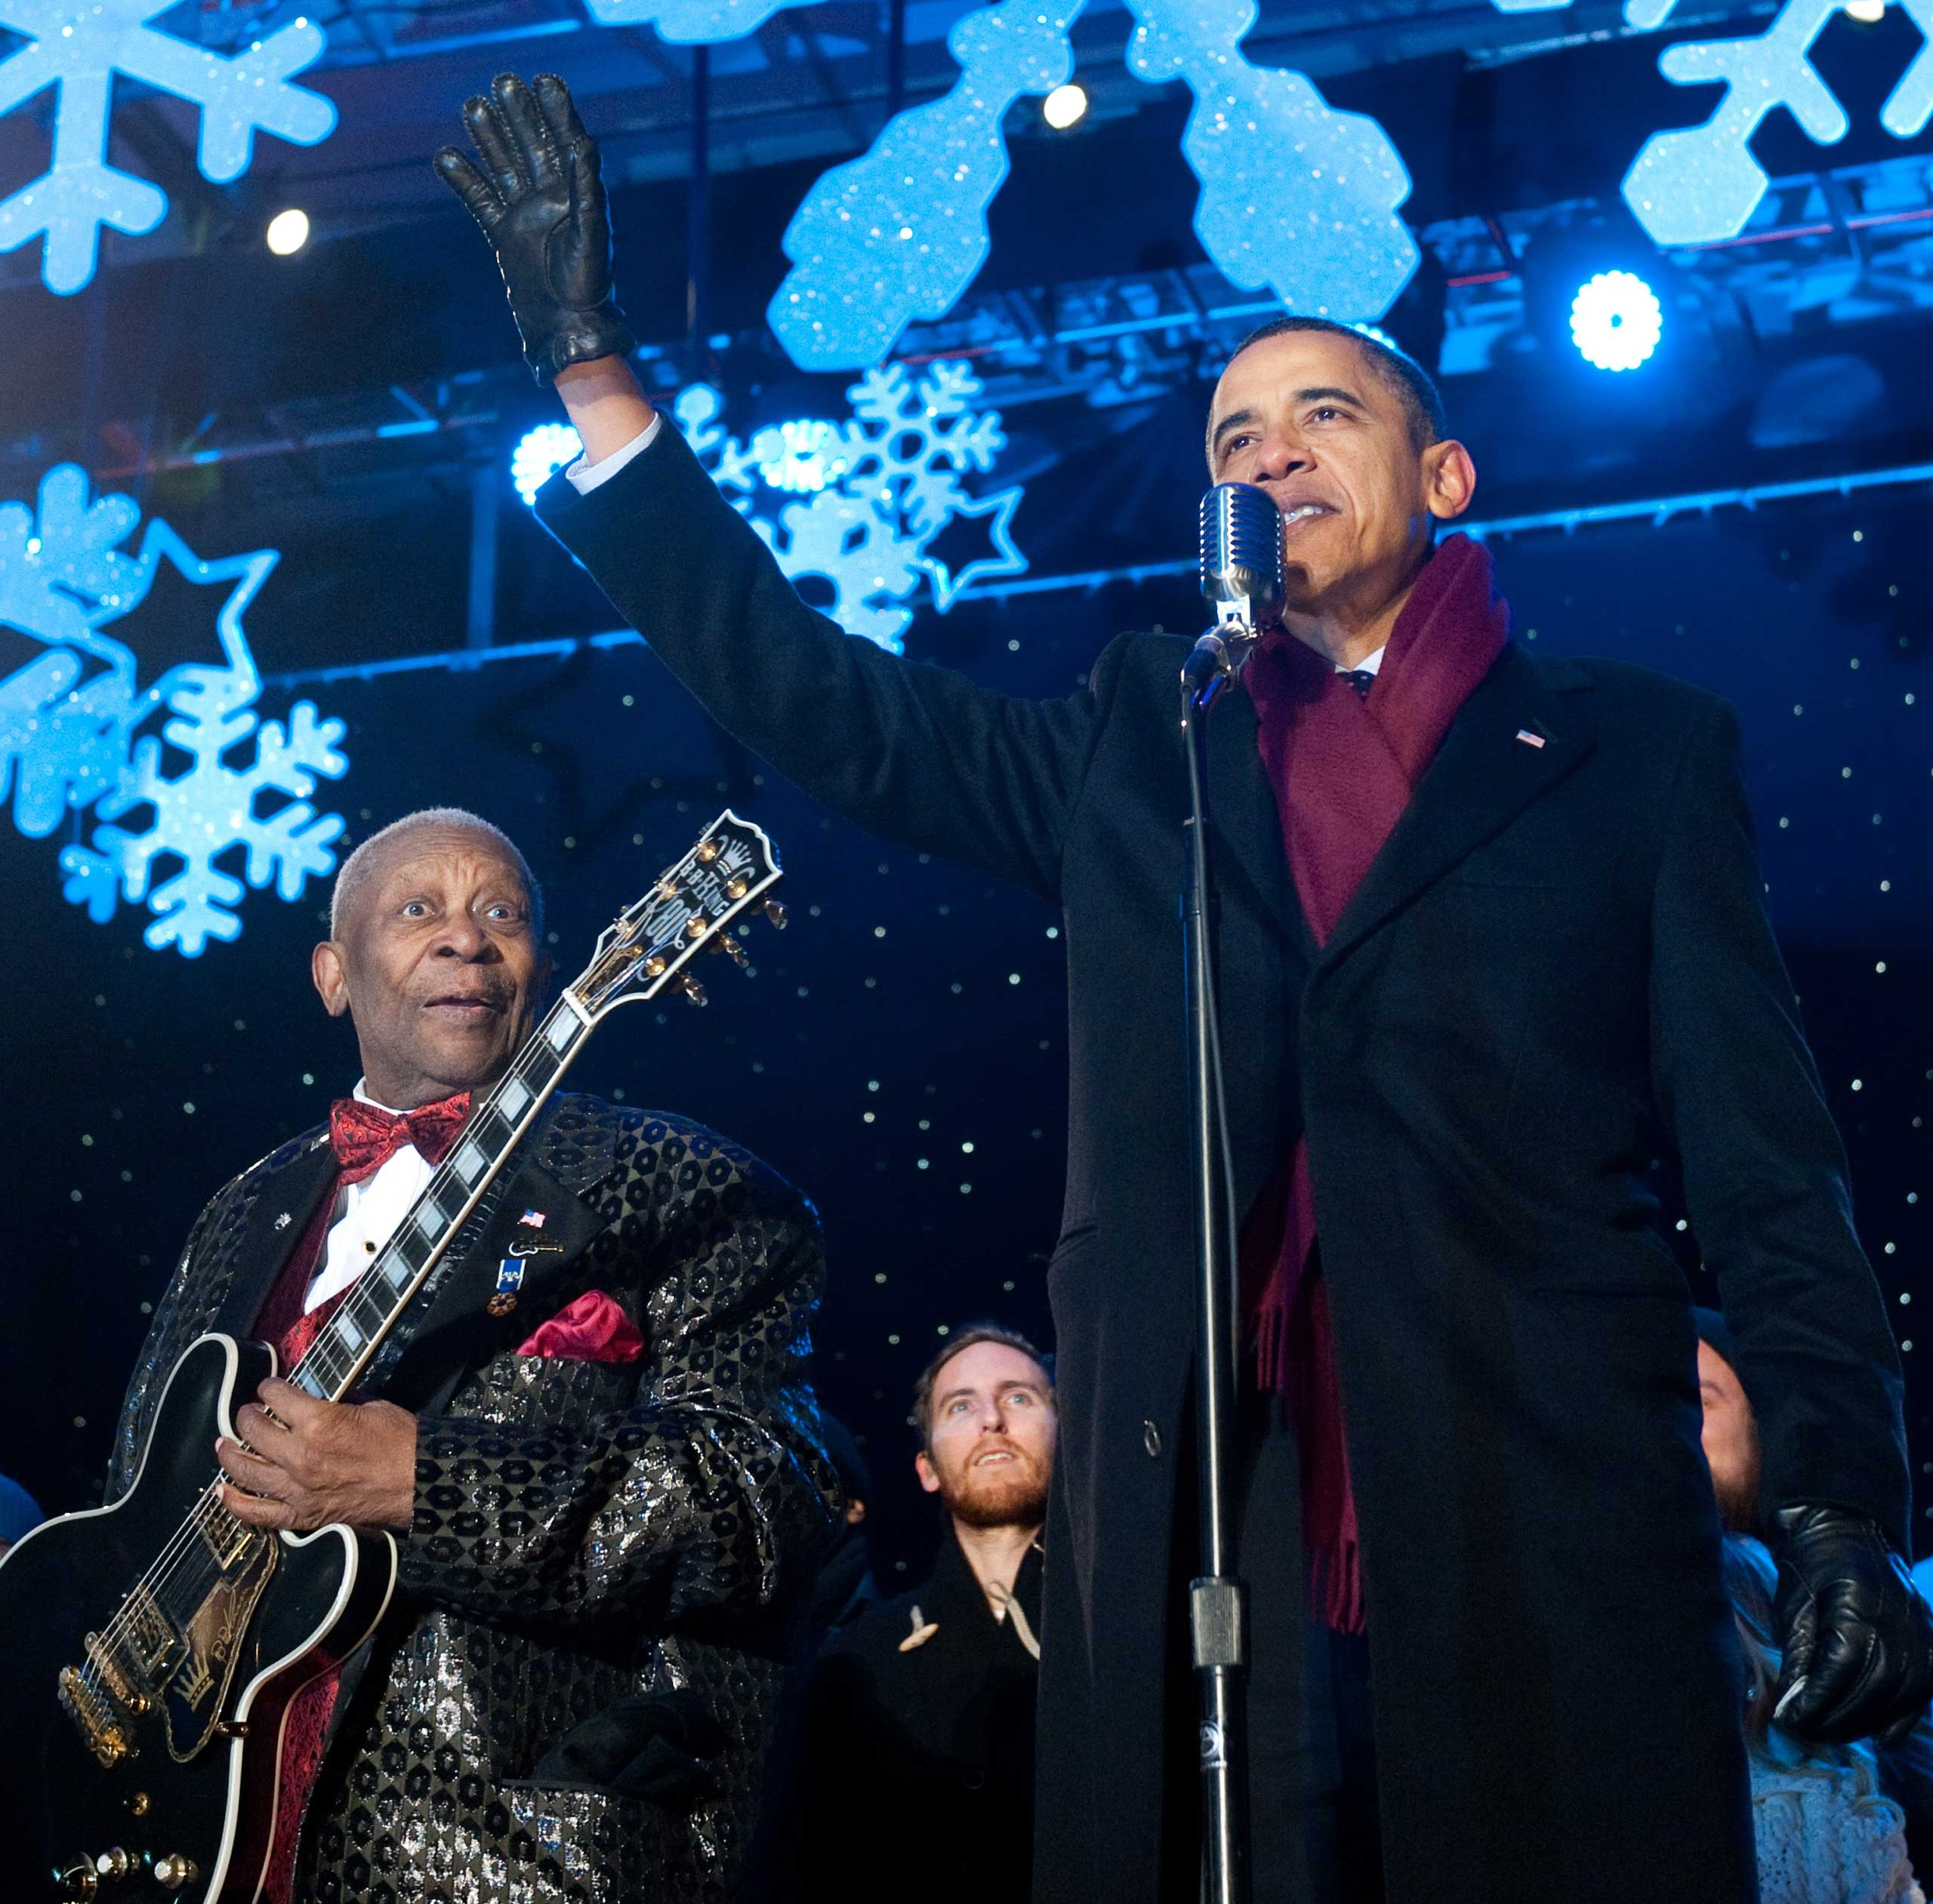 From Left: B.B. King watches as President Barack Obama waves during the National Christmas Tree Lighting ceremony on the Ellipse near the White House in Washington, D.C. on Dec. 9, 2010.